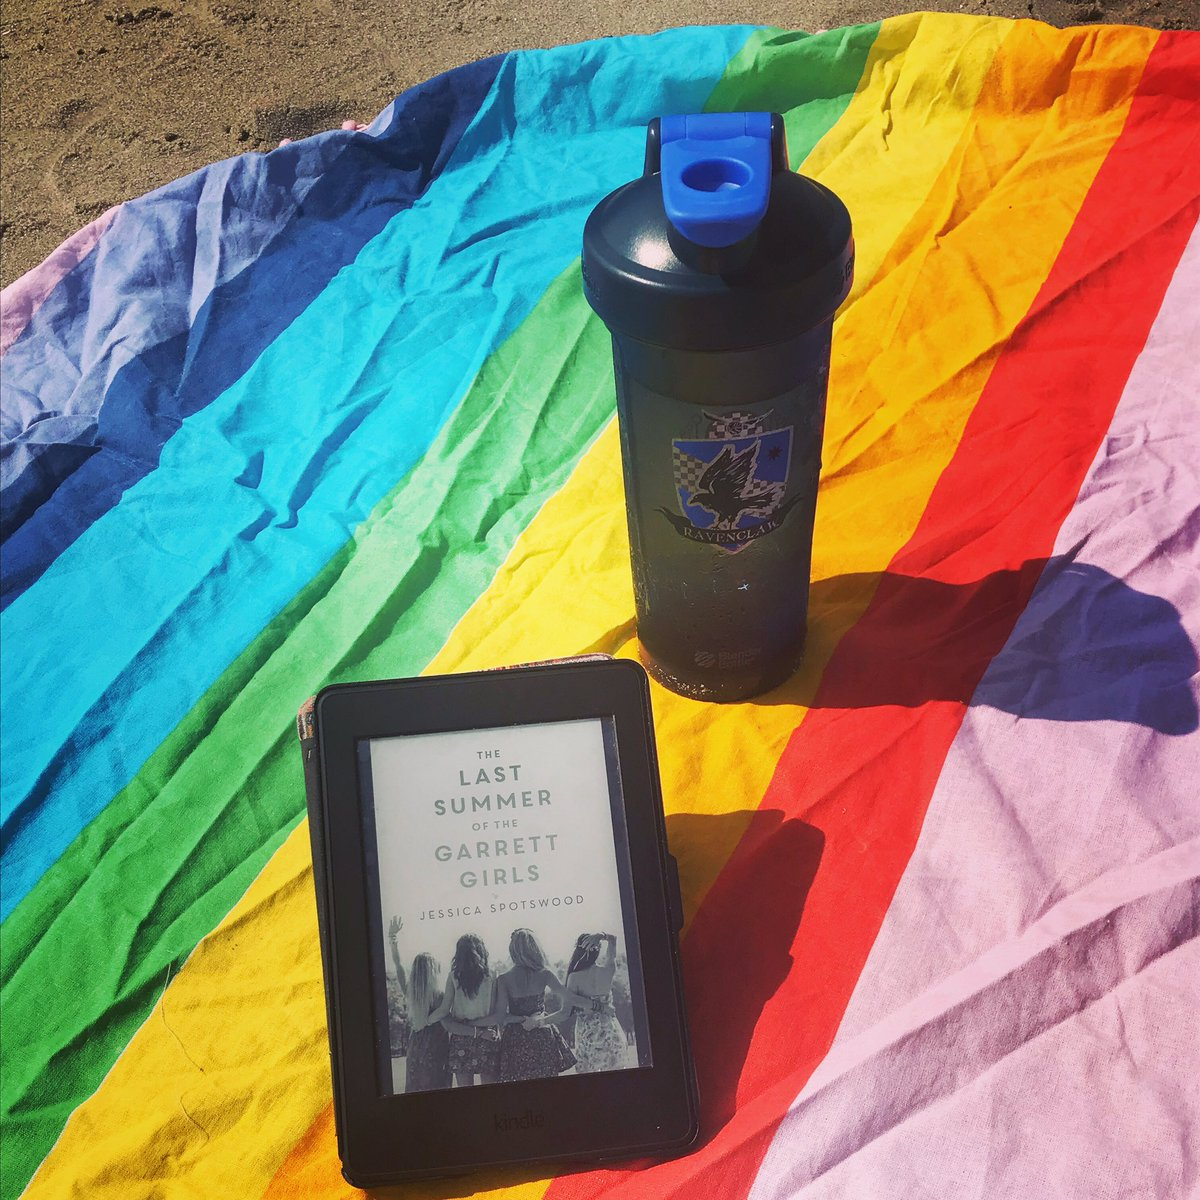 How's summer reading going? Mrs.Rosegrant is loving beach reading! <a target='_blank' href='http://search.twitter.com/search?q=tjms'><a target='_blank' href='https://twitter.com/hashtag/tjms?src=hash'>#tjms</a></a> <a target='_blank' href='http://twitter.com/ArlingtonVALib'>@ArlingtonVALib</a> <a target='_blank' href='http://twitter.com/APSLibrarians'>@APSLibrarians</a> <a target='_blank' href='http://search.twitter.com/search?q=summerreading'><a target='_blank' href='https://twitter.com/hashtag/summerreading?src=hash'>#summerreading</a></a> <a target='_blank' href='http://search.twitter.com/search?q=tjmsrocks'><a target='_blank' href='https://twitter.com/hashtag/tjmsrocks?src=hash'>#tjmsrocks</a></a> <a target='_blank' href='https://t.co/juGA6bdK6R'>https://t.co/juGA6bdK6R</a>